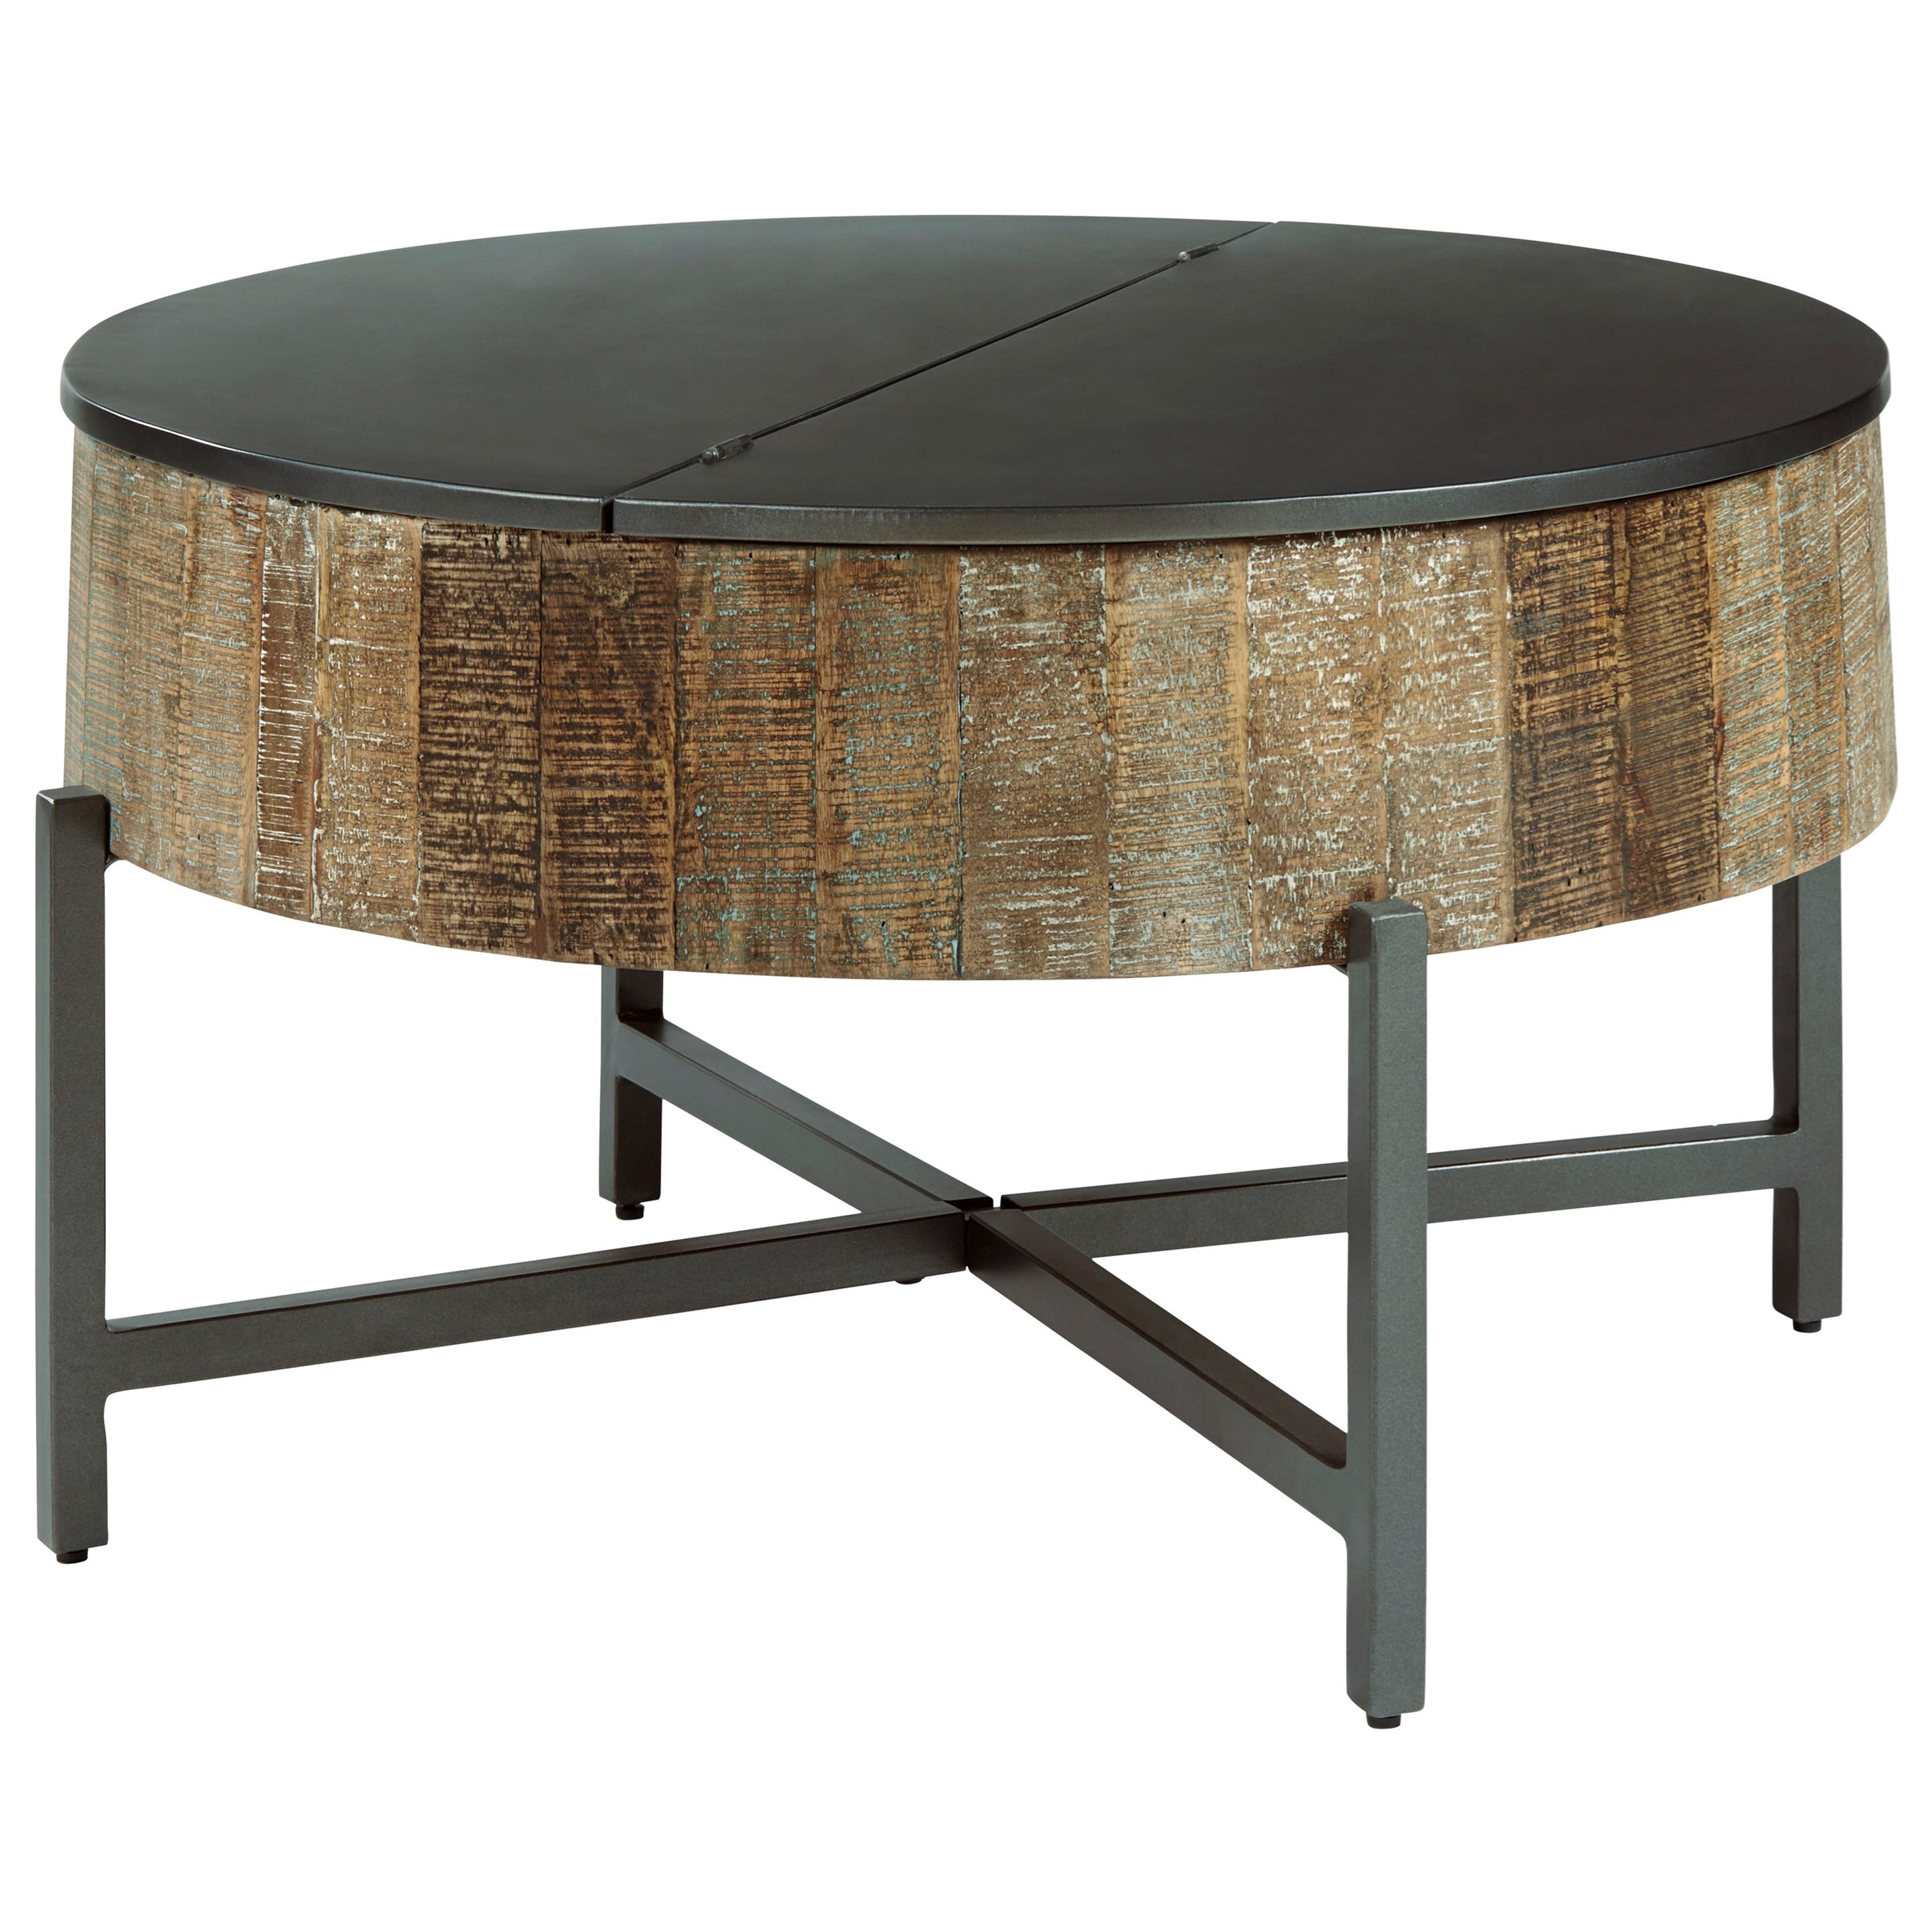 Nashbryn Cocktail Table by Signature Design by Ashley at HomeWorld Furniture